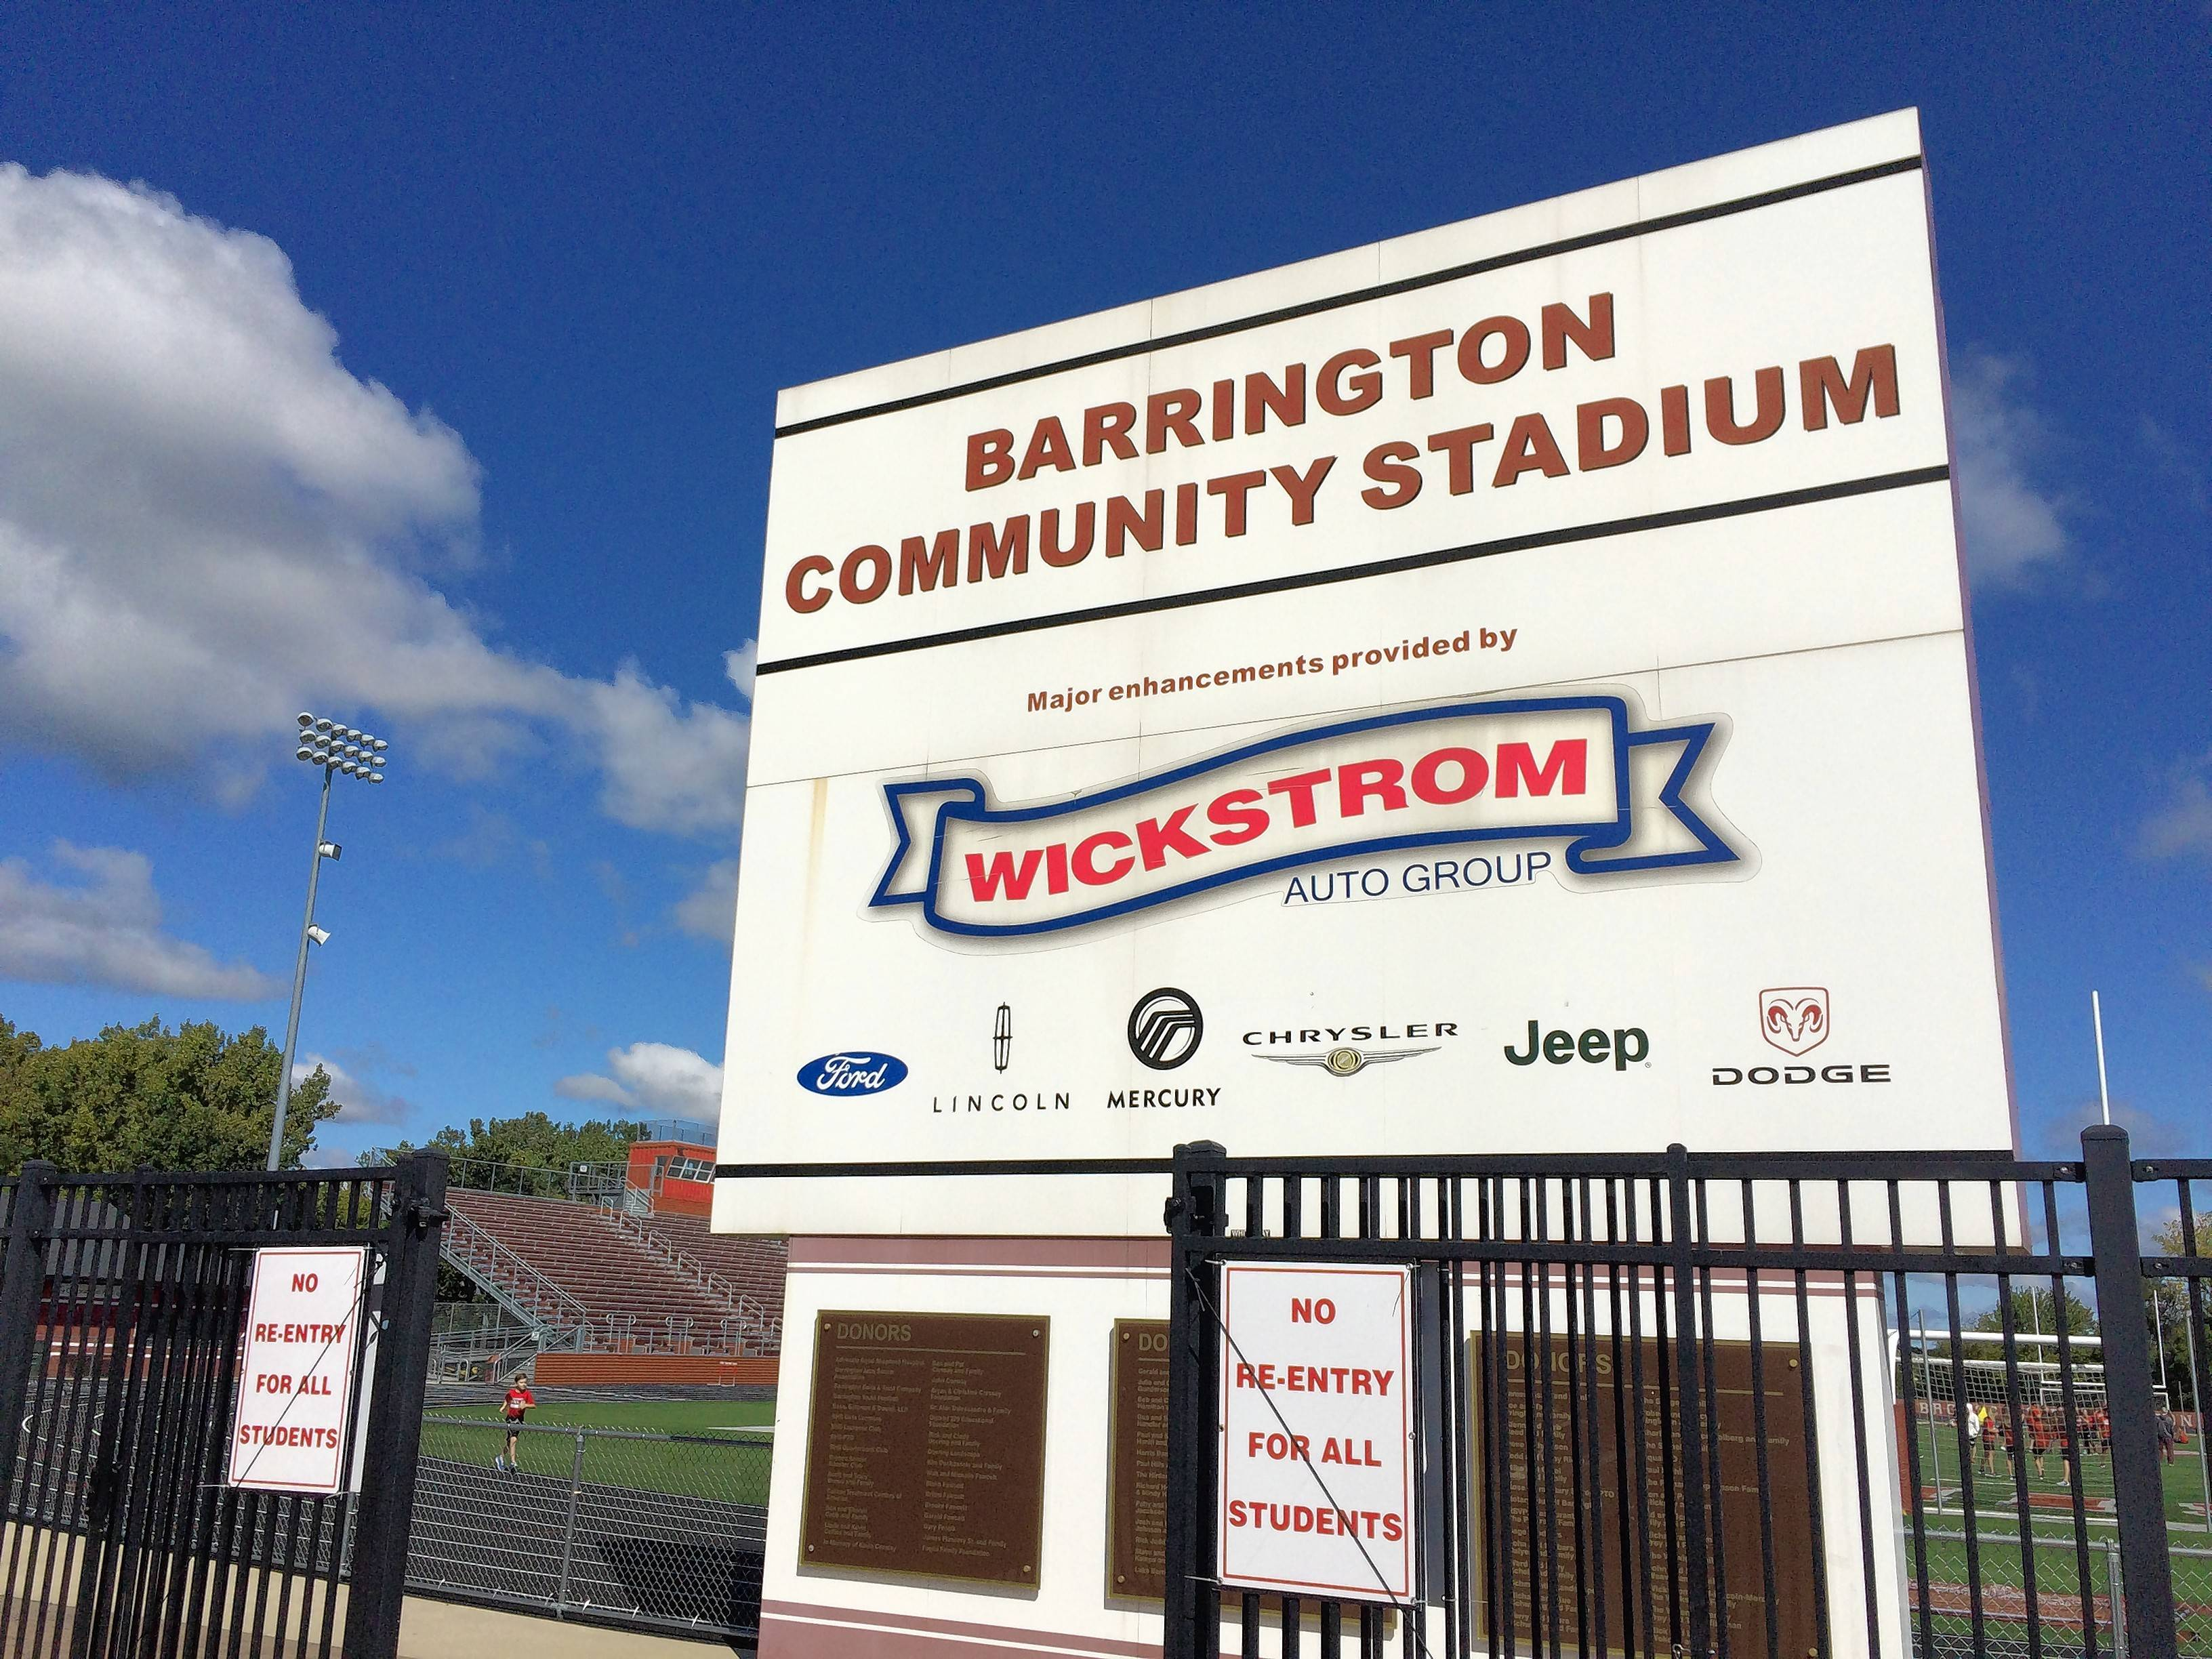 Another round of private contributions, including advertising and naming-rights deals, could help defray an estimated $920,000 in potential scoreboard and field renovation costs for Barrington High School's outdoor stadium, officials said.